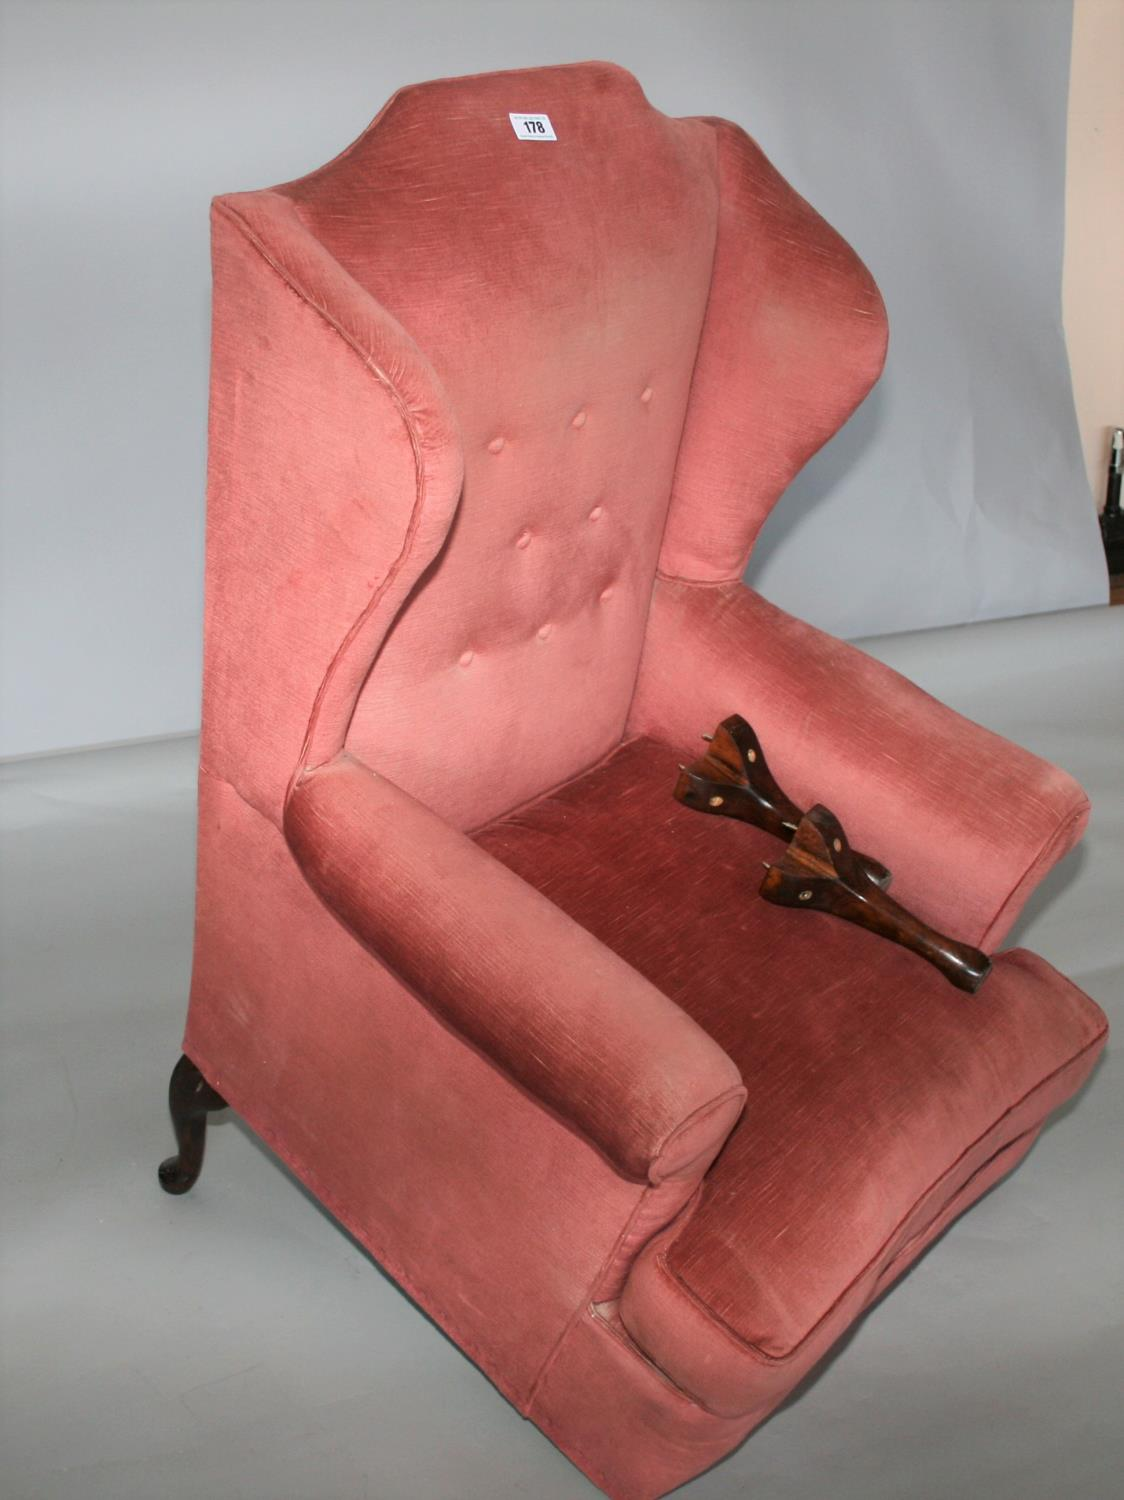 Queen Ann style wing back chair (as found) 75W x 120H x 75D - Image 3 of 3